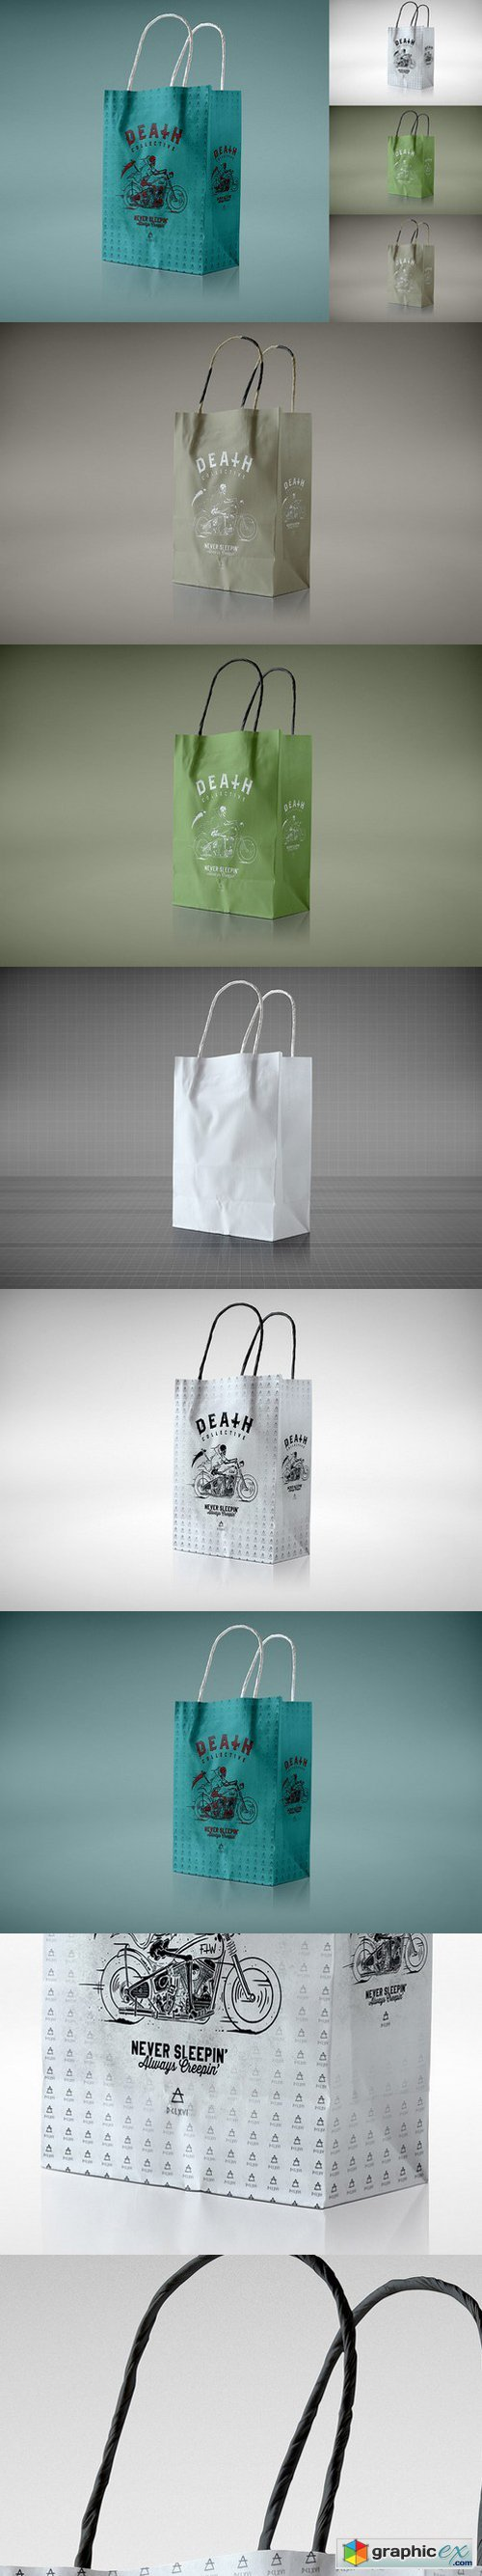 Shopping Bag Mock-up 2